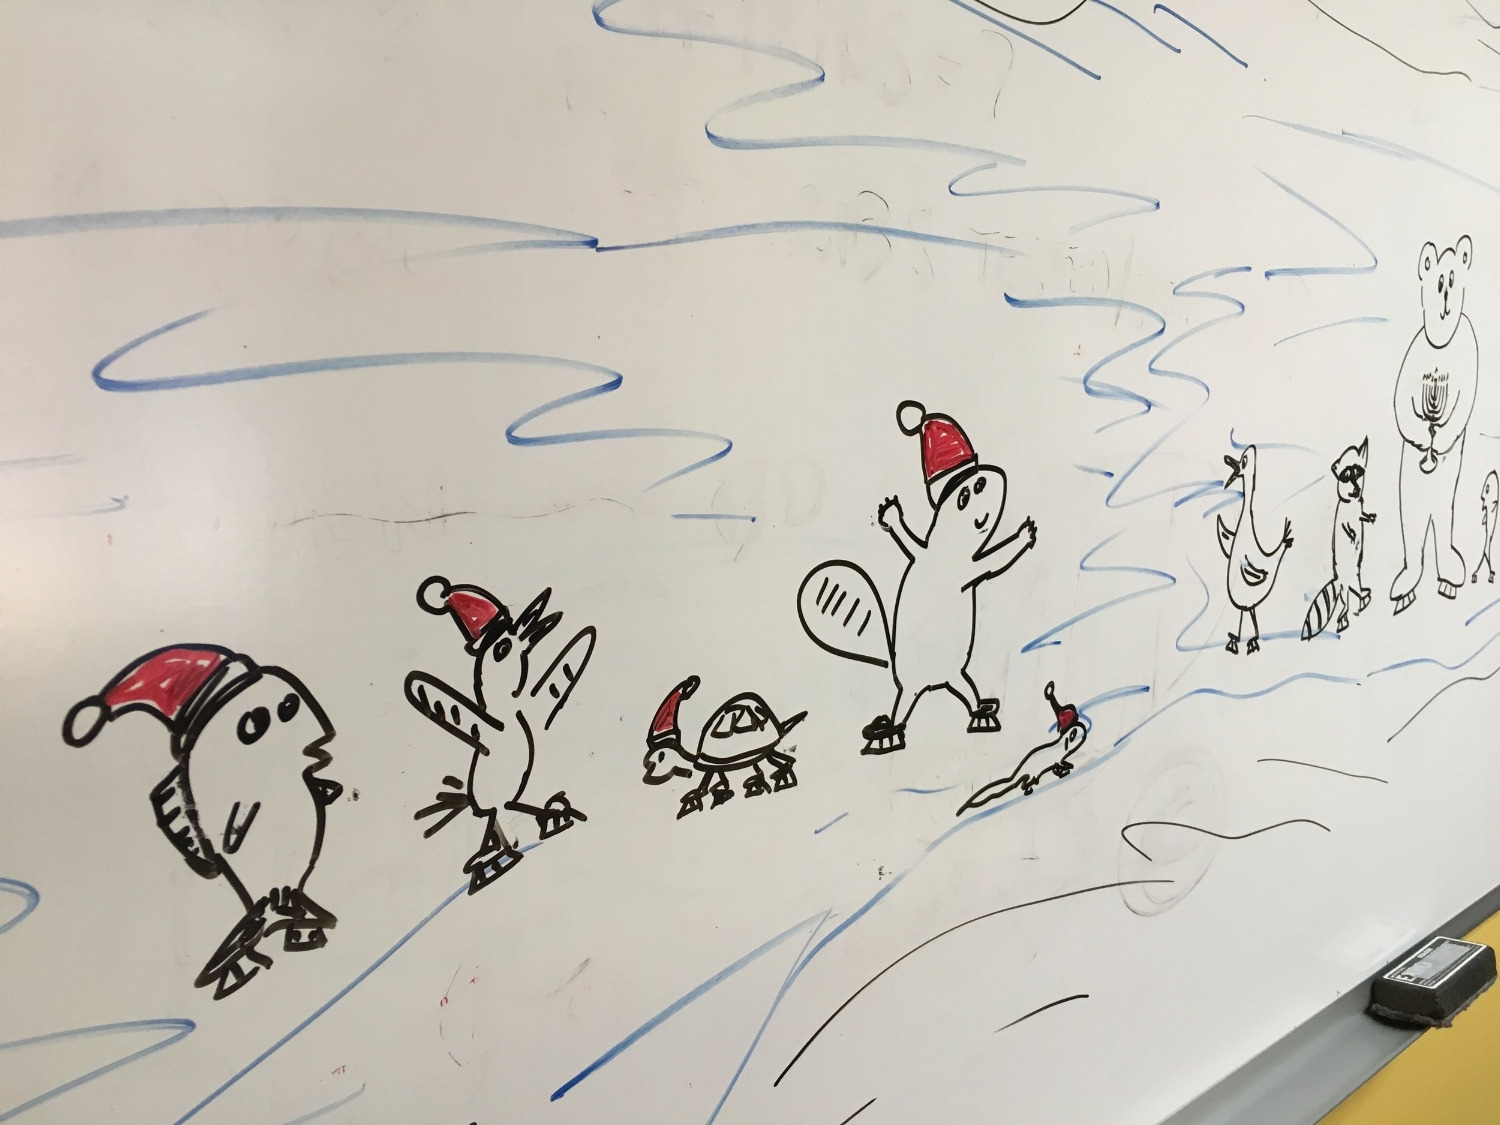 Big-ass whiteboard at work, cries out for some fun time-wasting activities. Other than meetings.